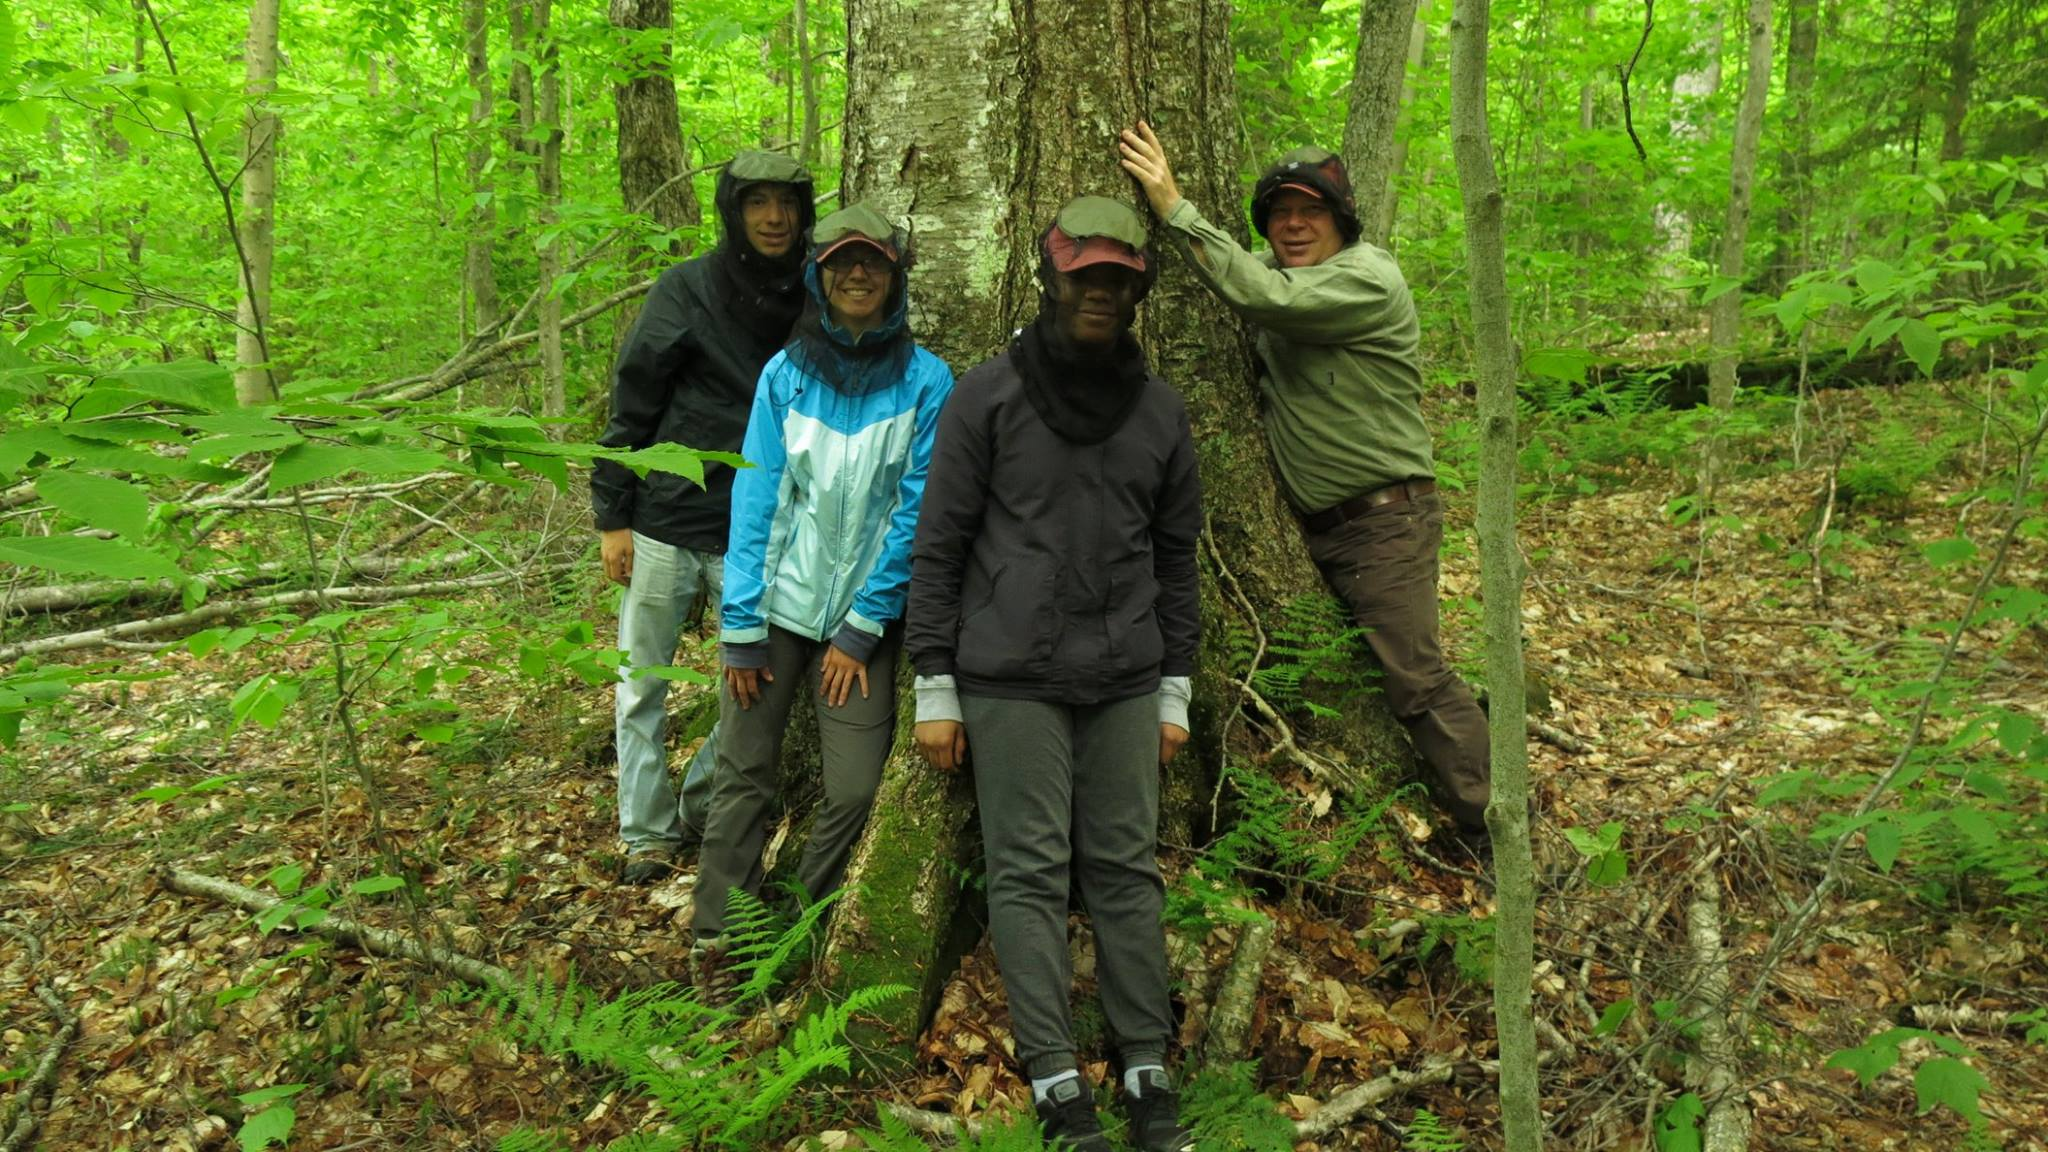 Skidmore undergraduate students visited the shingle shanty preserve working on a project on carbon sequestration